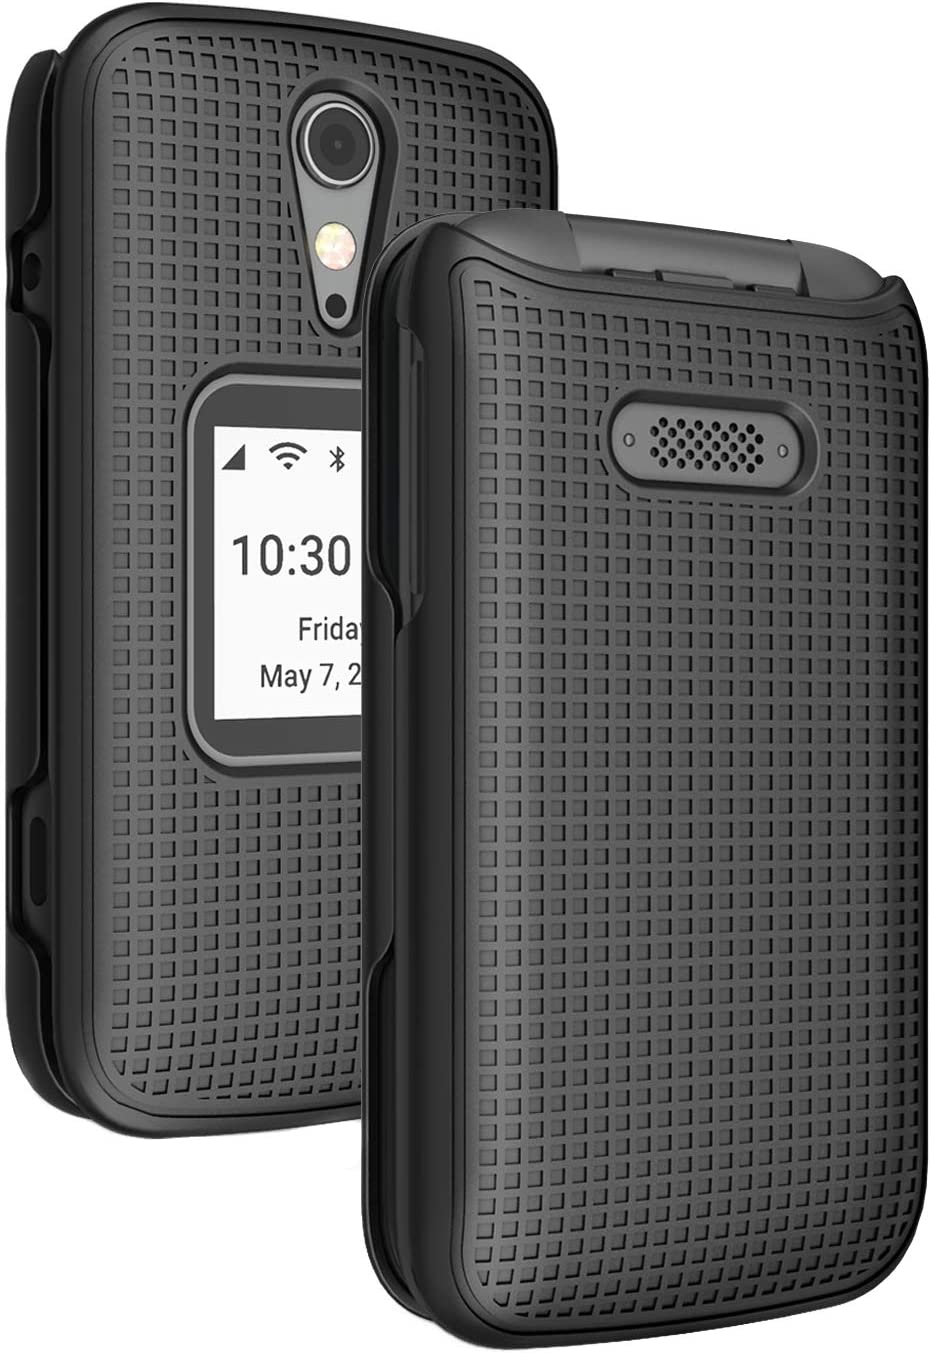 Case for Jitterbug Flip2, Nakedcellphone [Black] Protective Snap-On Hard Shell Cover [Grid Texture] for Jitterbug Flip 2 Phone (aka Lively Flip) (4053SJ7)